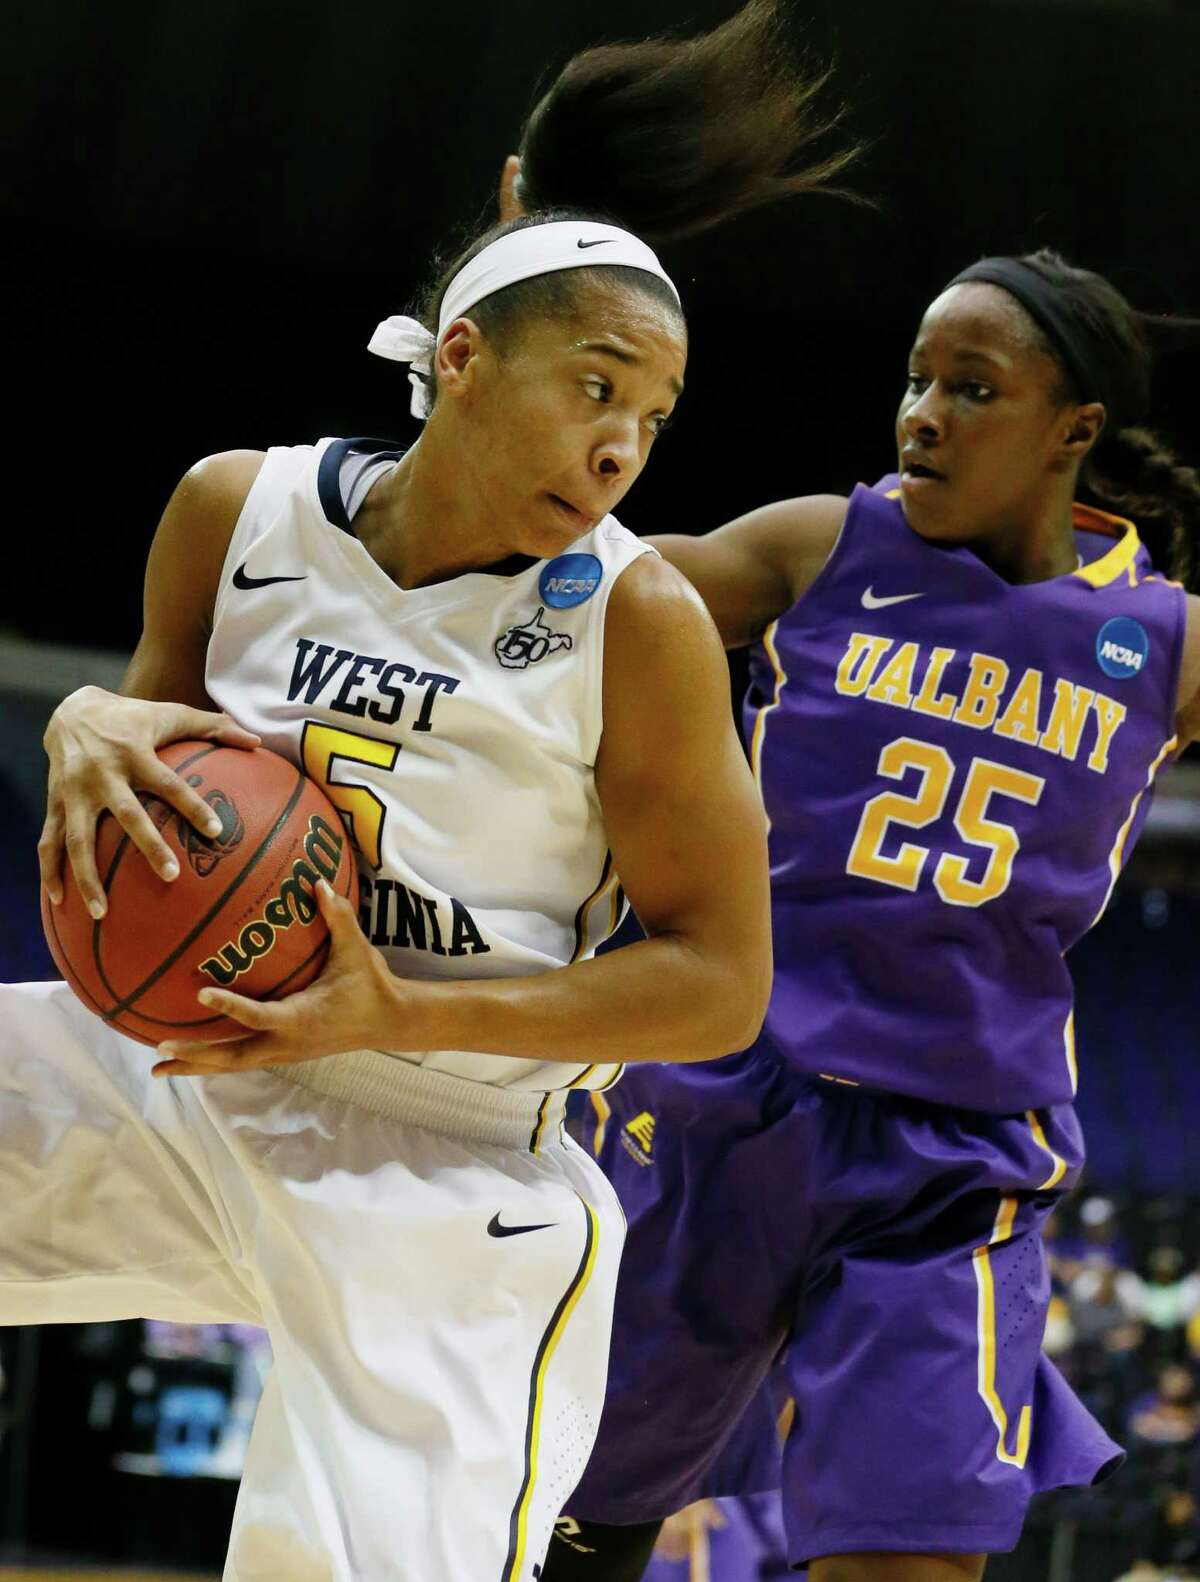 West Virginia forward Averee Fields (5) looks for an open teammate after pulling down a rebound past the defense of Albany forward Shereesha Richards (25) in the first half of an NCAA college basketball first-round tournament game on Sunday, March 23, 2014, in Baton Rouge, La. (AP Photo/Rogelio V. Solis) ORG XMIT: LARS116